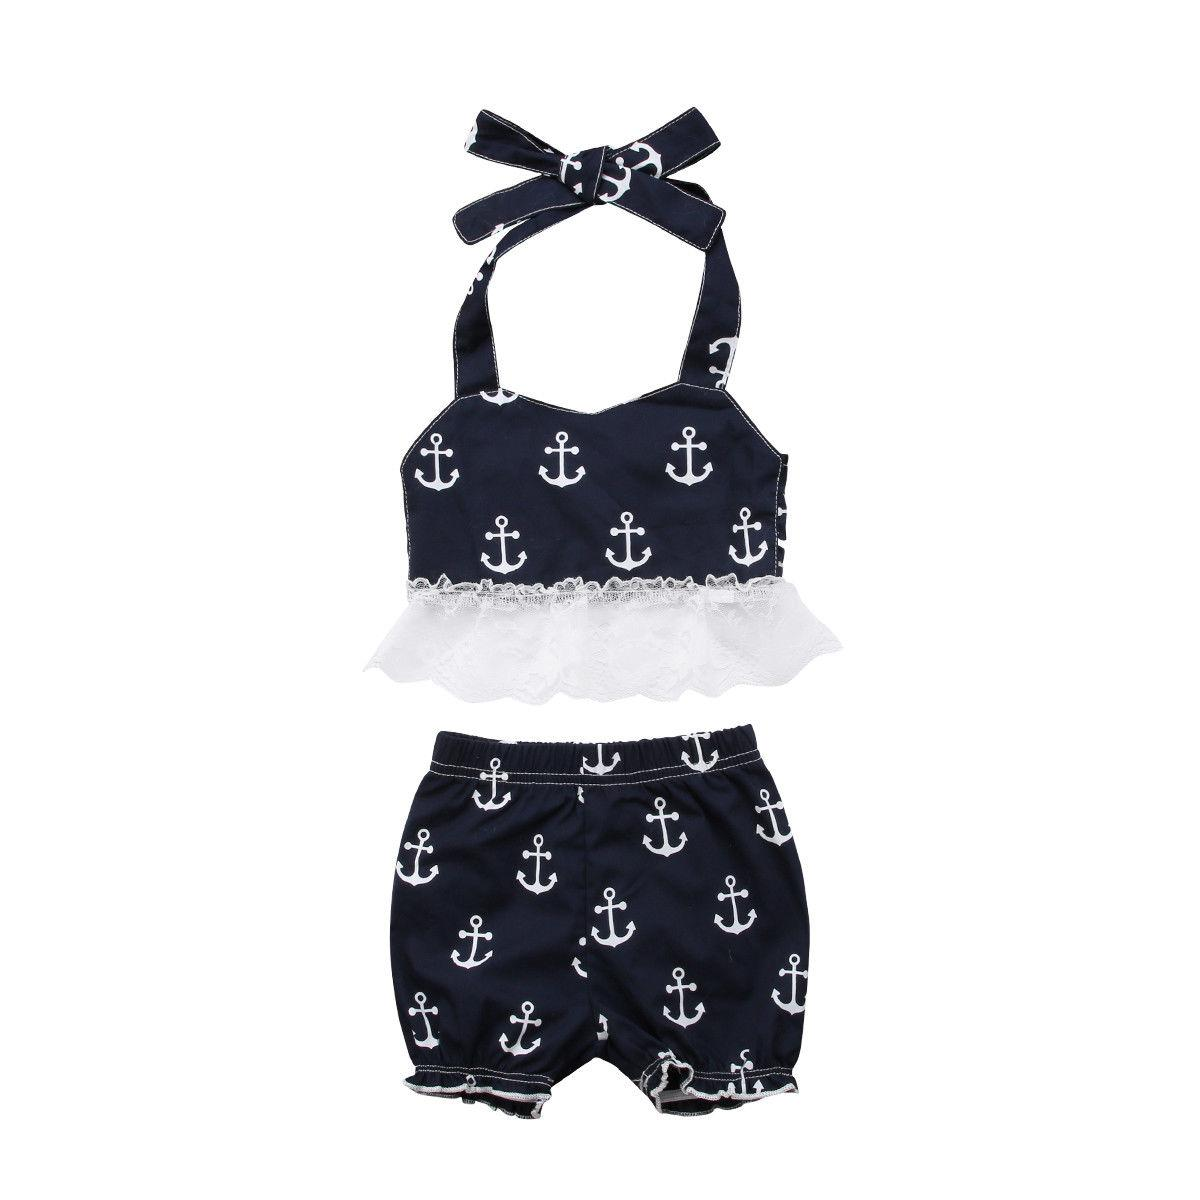 371e47f9d640 2019 Summer Toddler Baby Girls Anchor Lace Sleeveless T Shirt Shorts ...